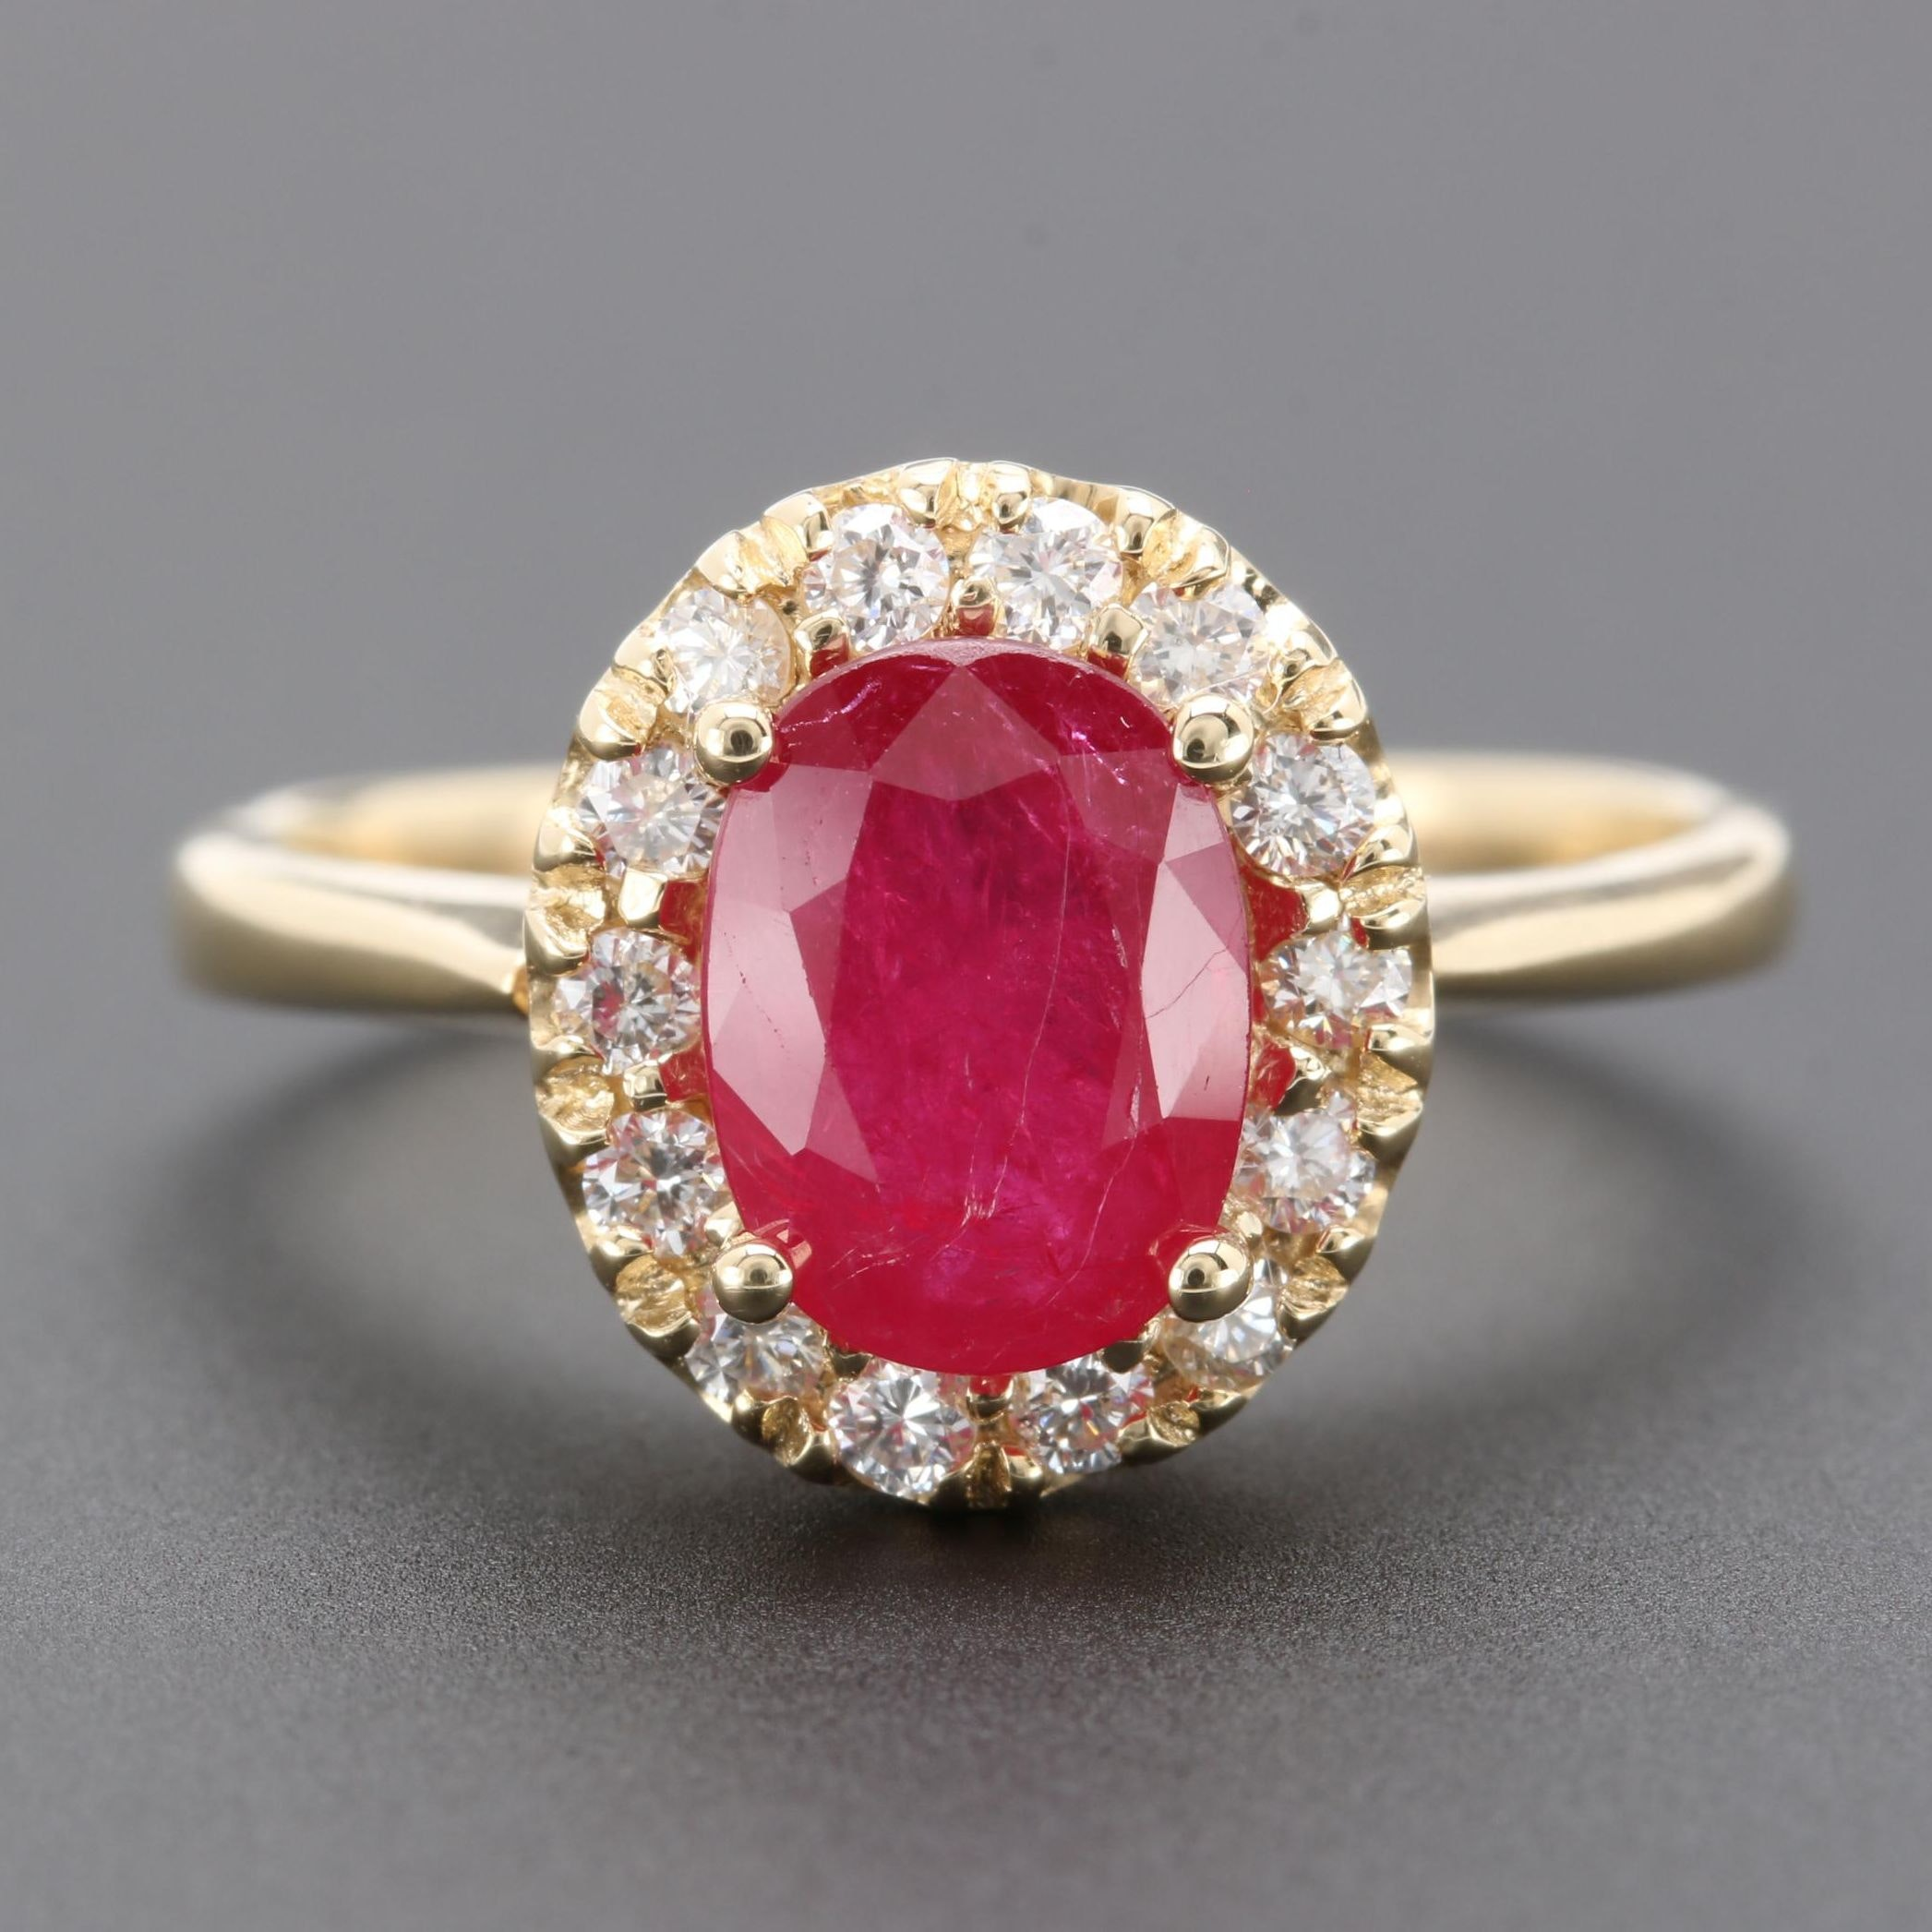 14K Yellow Gold 1.27 CT Ruby and Diamond Ring